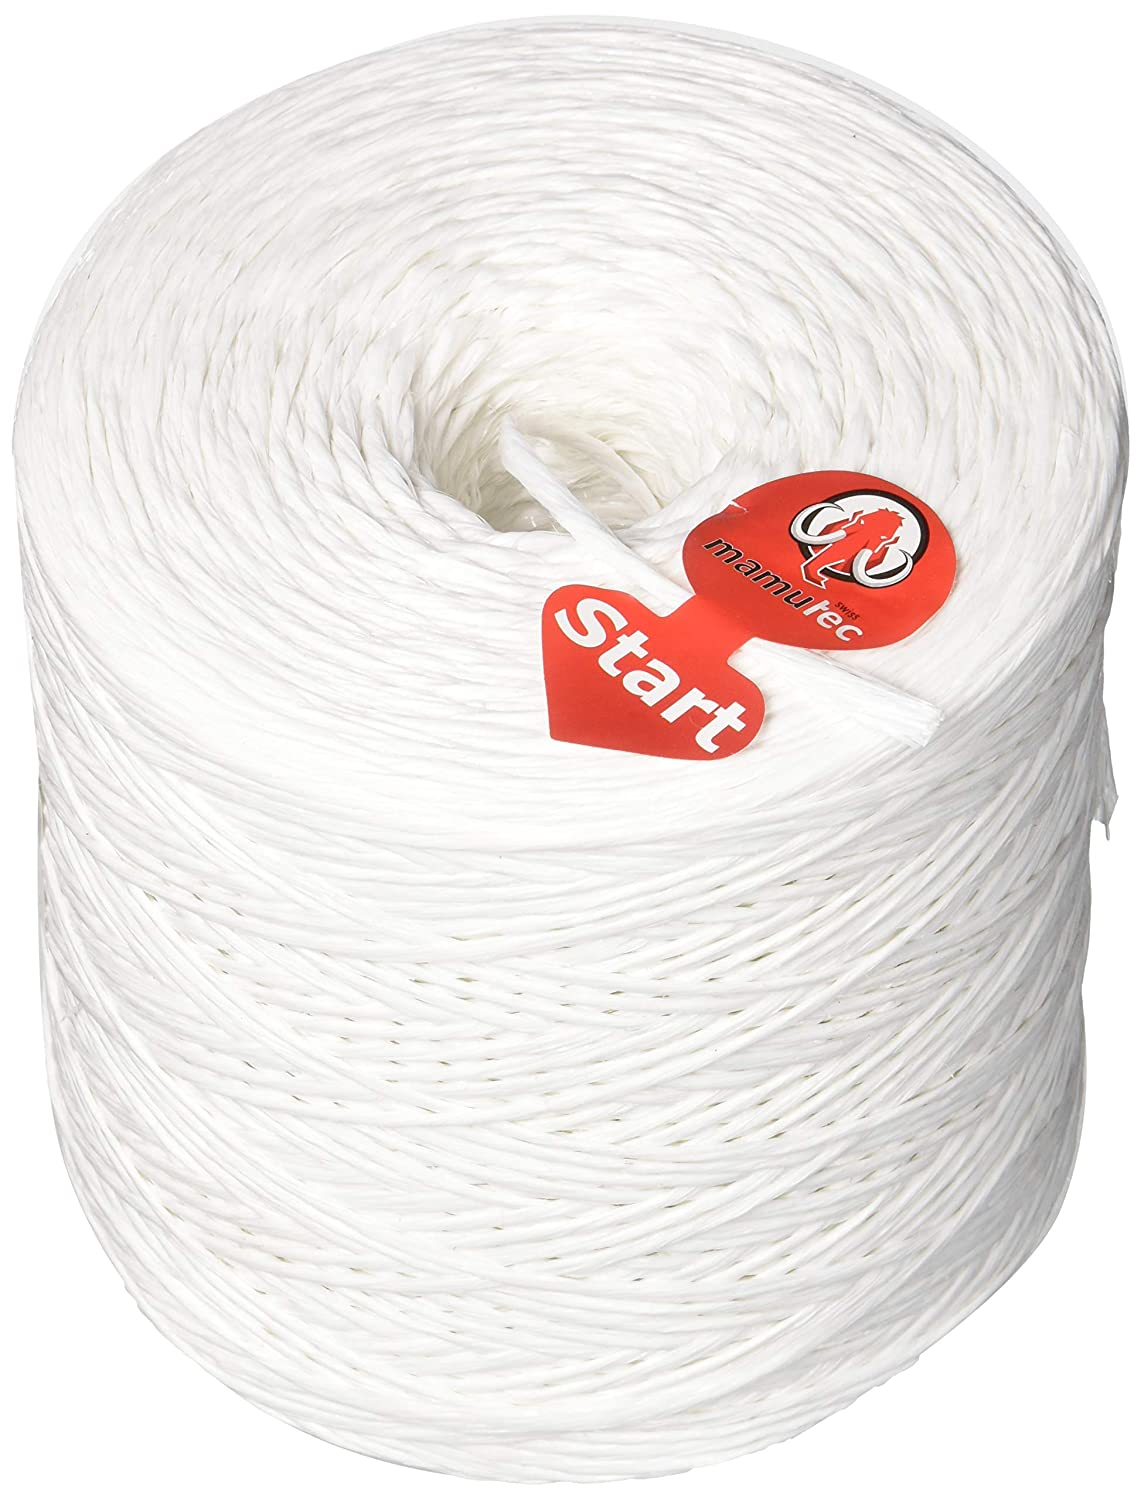 Mamutec Allround Rope Polypropylene 2/5  inch 5  mm (1), White, 6,000  –   25800  –   9 000 - 25800 - 9 6000-25800-01-9